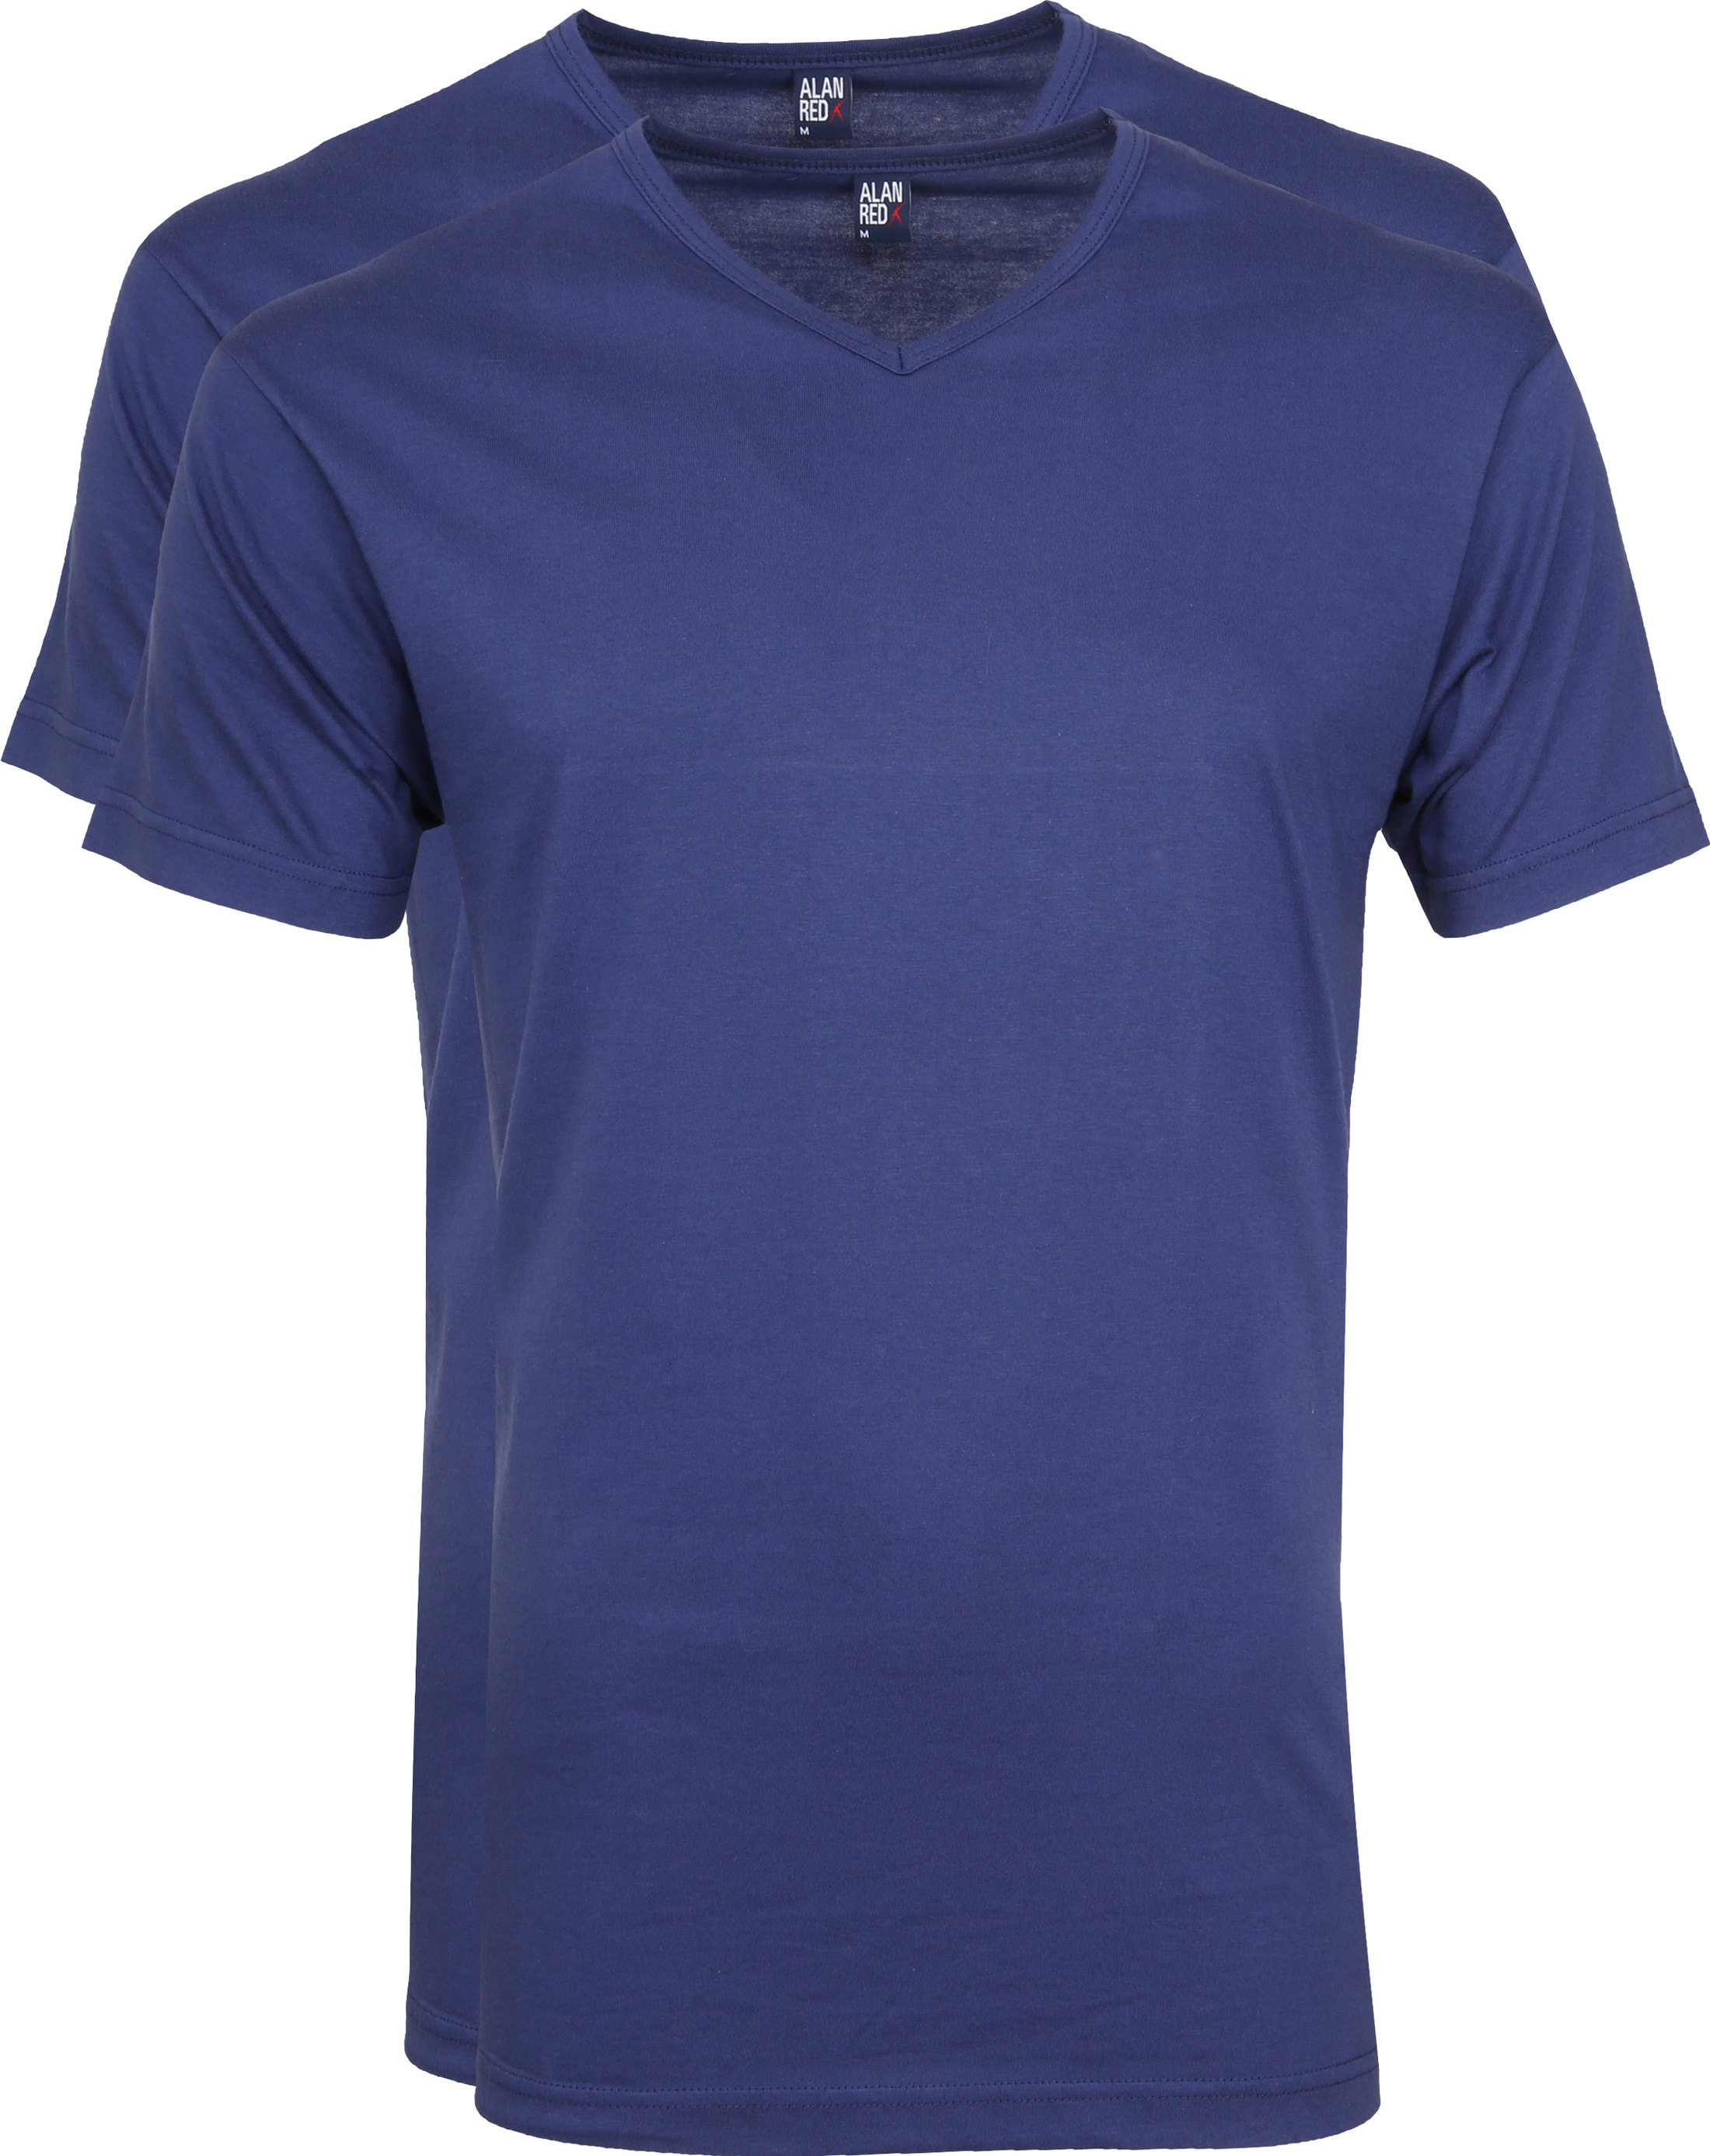 Alan Red Vermont T shirts V Neck Blue (2Pack) 6671 M3